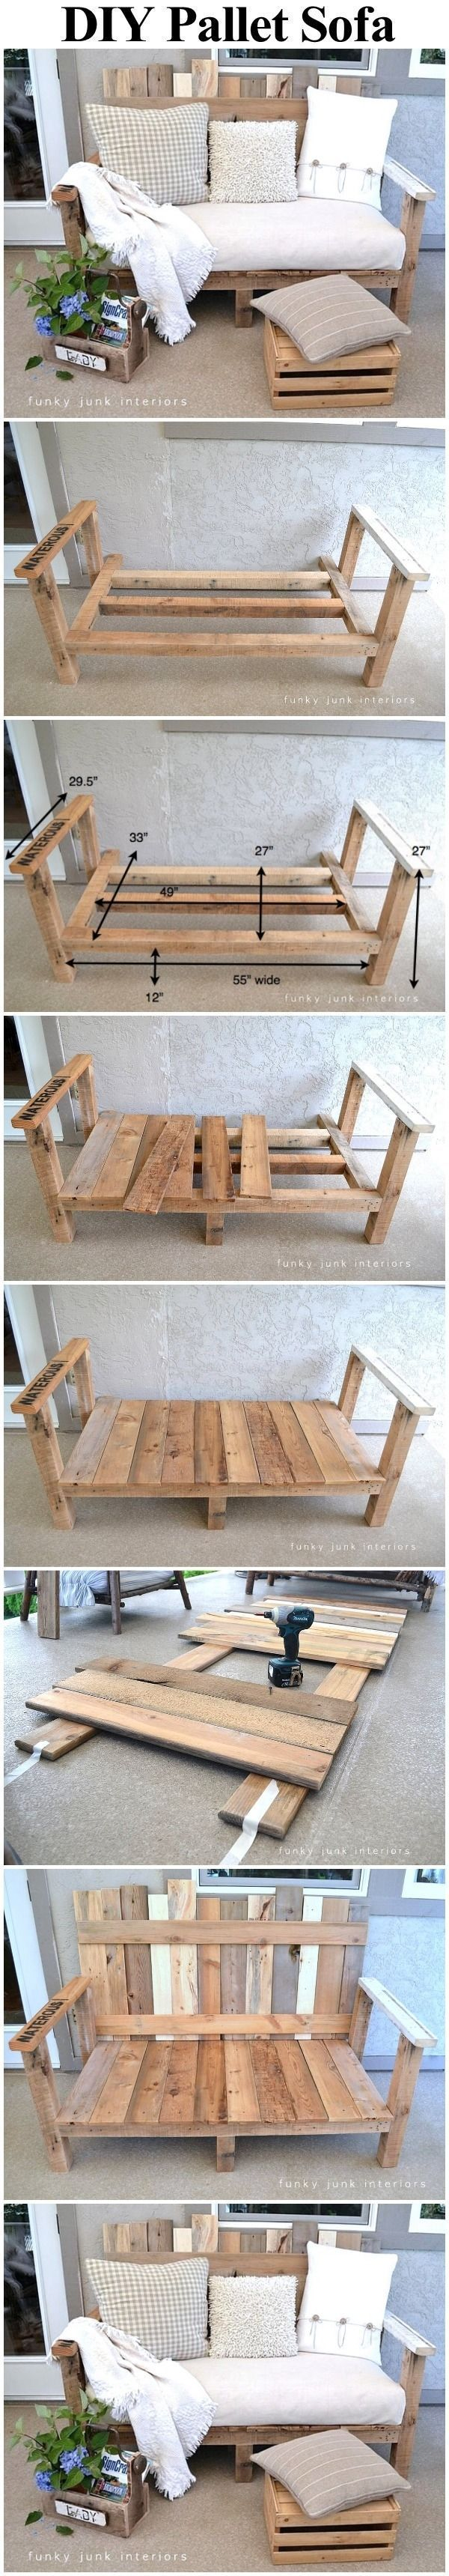 Pallet Wood Outdoor Sofa Pictures, Photos, and Images for Facebook, Tumblr, Pint...